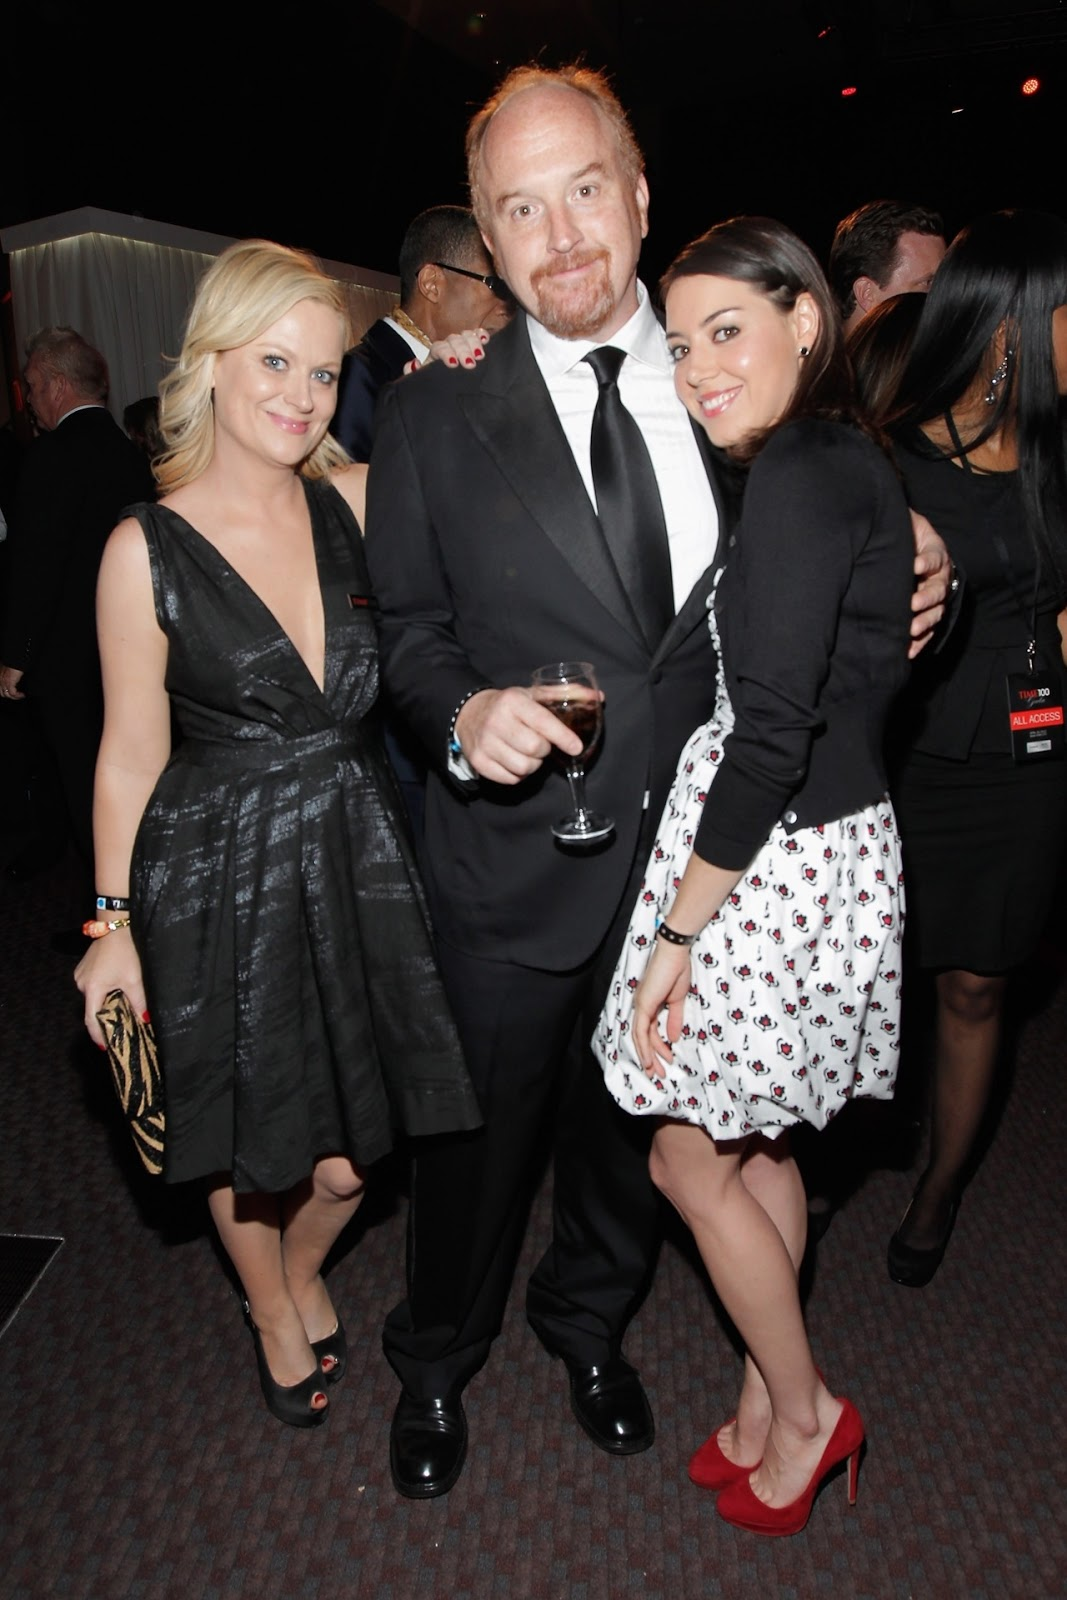 Louis ck dating who